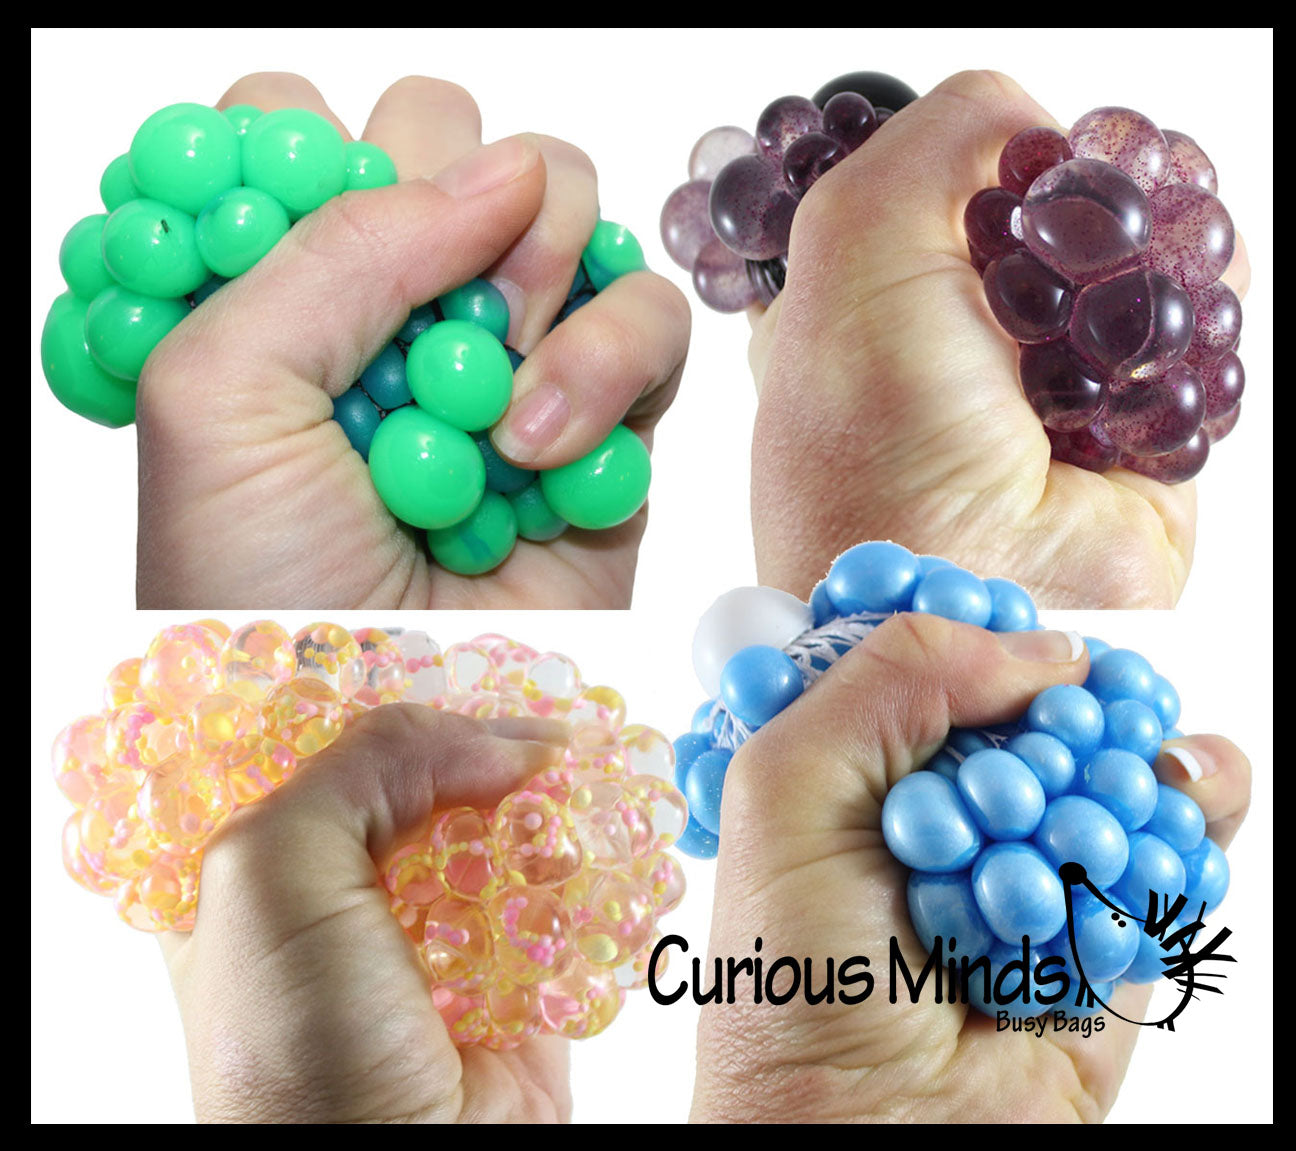 Set of 4 Different Bubble Mesh Balls - Pearl Iridescent/ Metallic / Solid / Confetti Squishy Fidget Ball with Web Netting - Stress Ball Color Changing Blobs - Sensory, Fidget Toy- Gooey Squish Bubble Popping OT